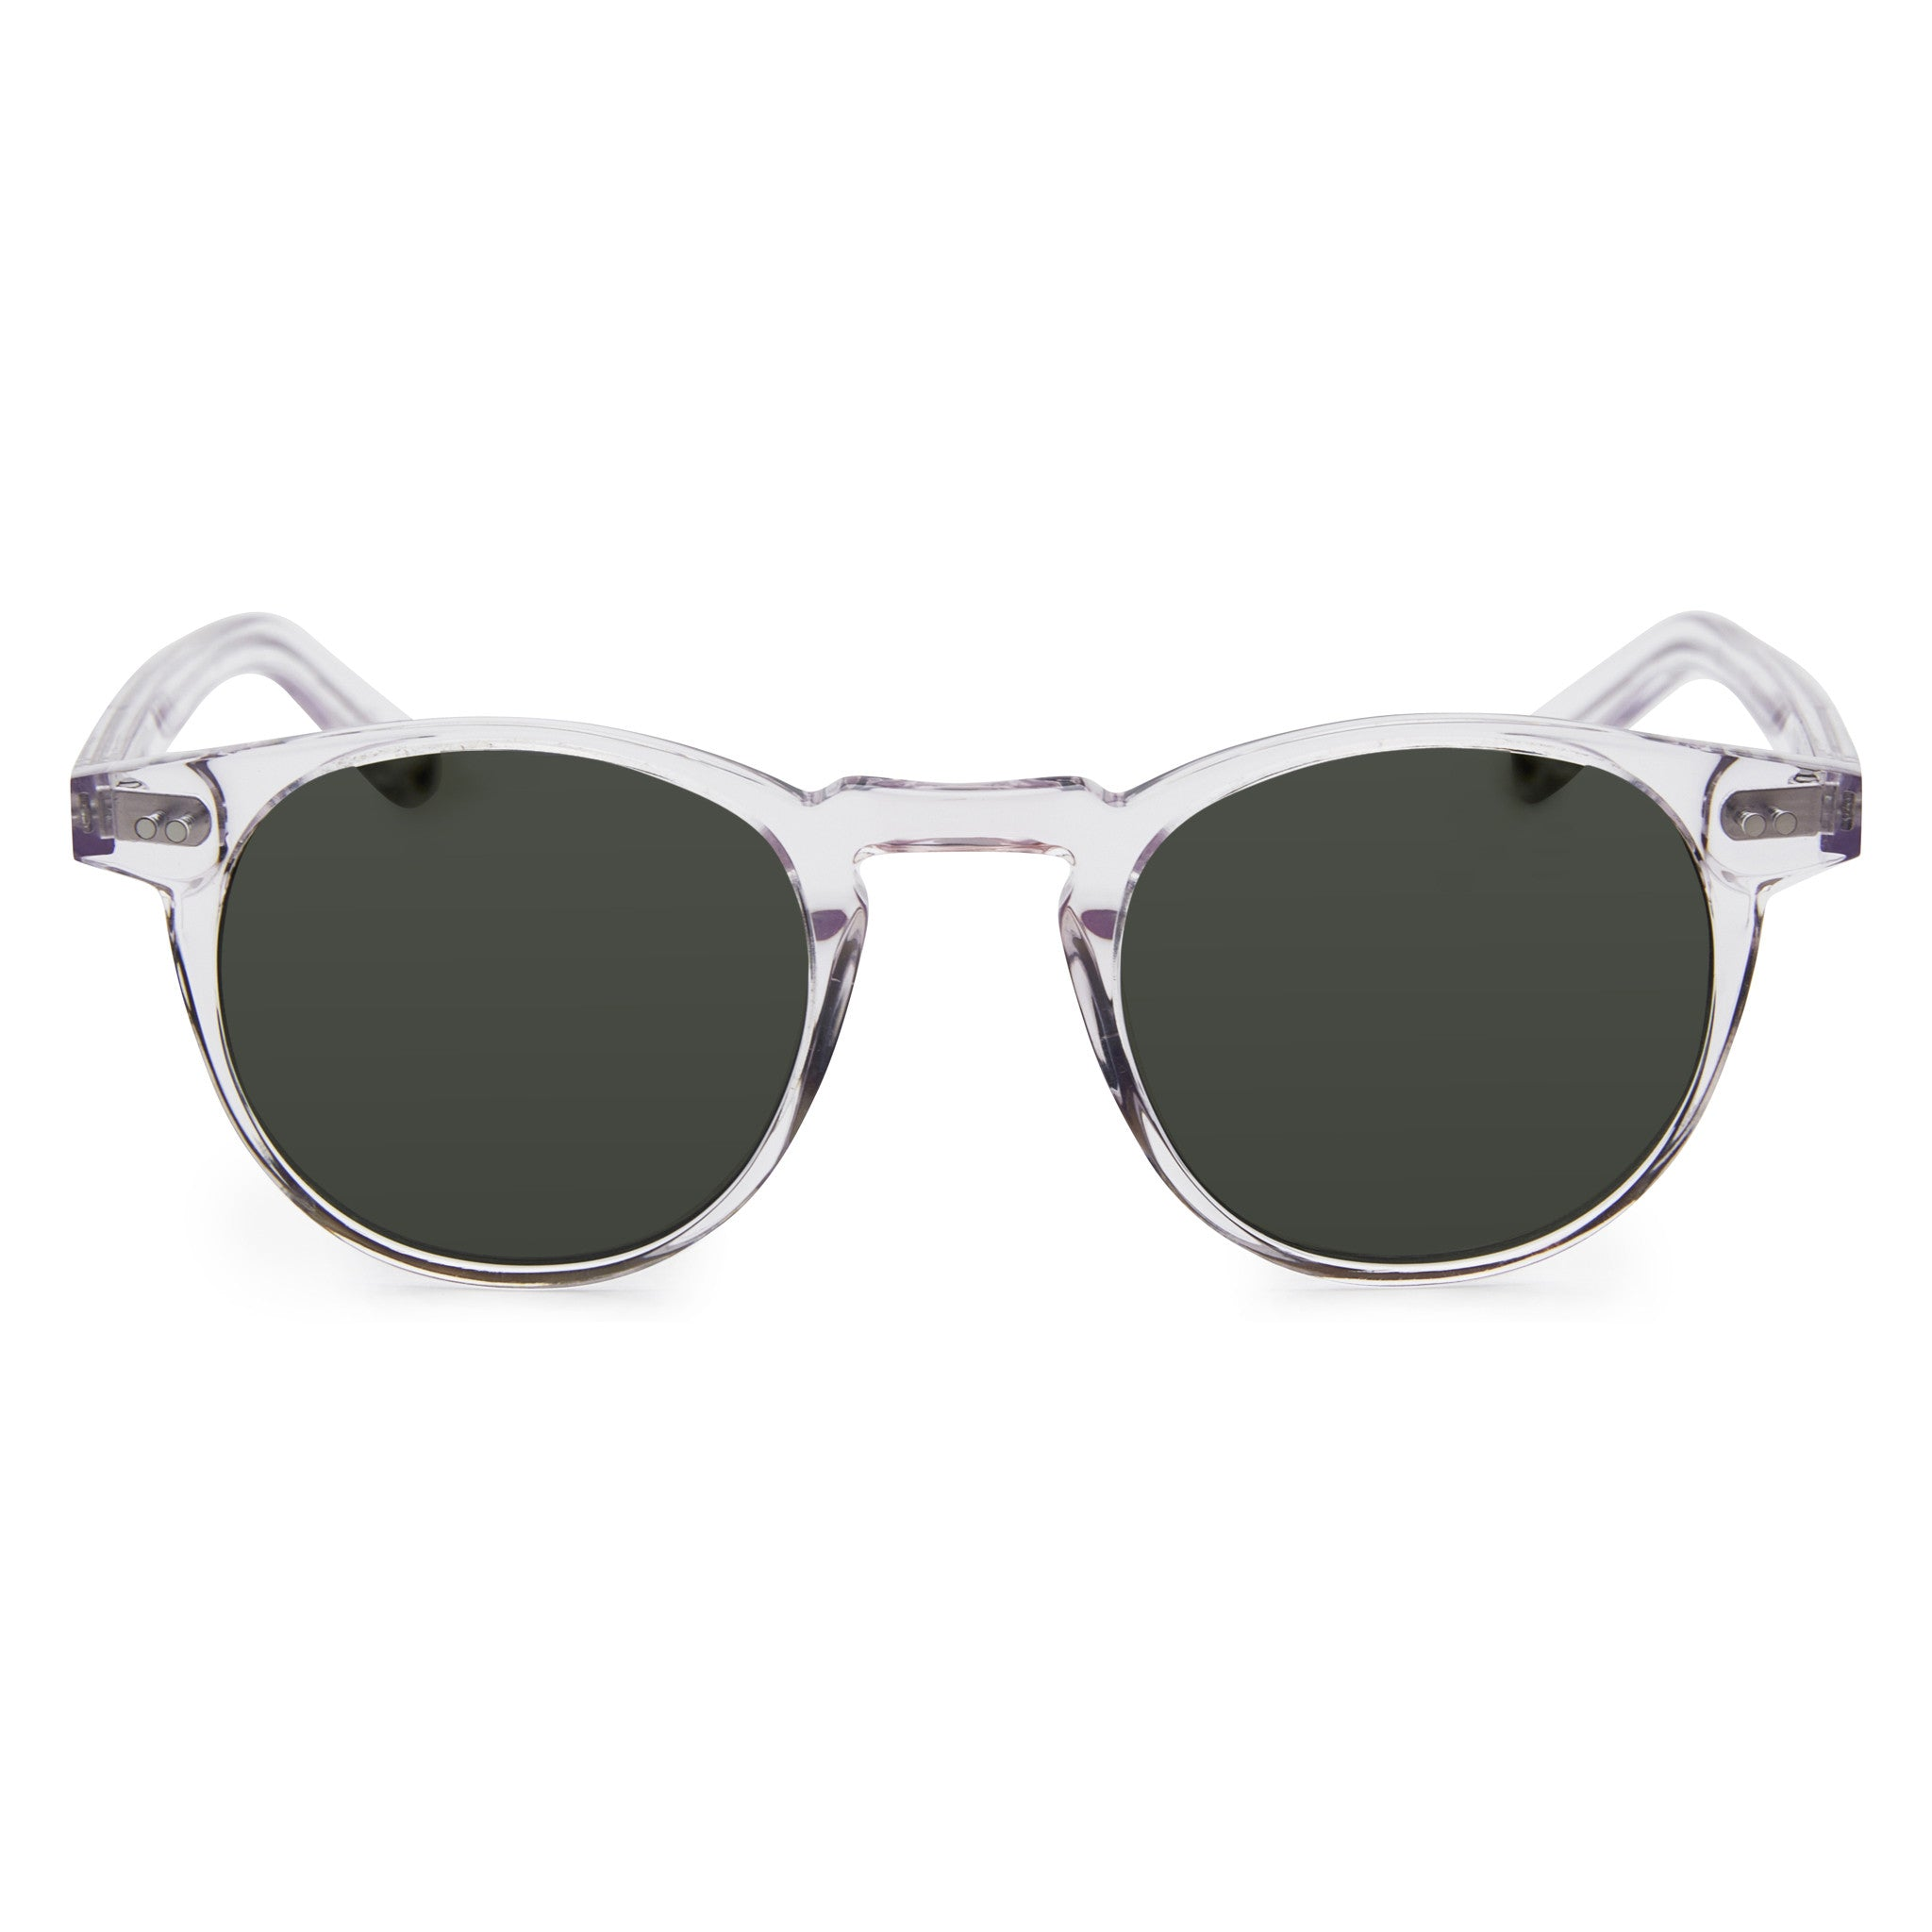 1fb622be54 Pacifico Optical Buckler - Crystal with Green Lens